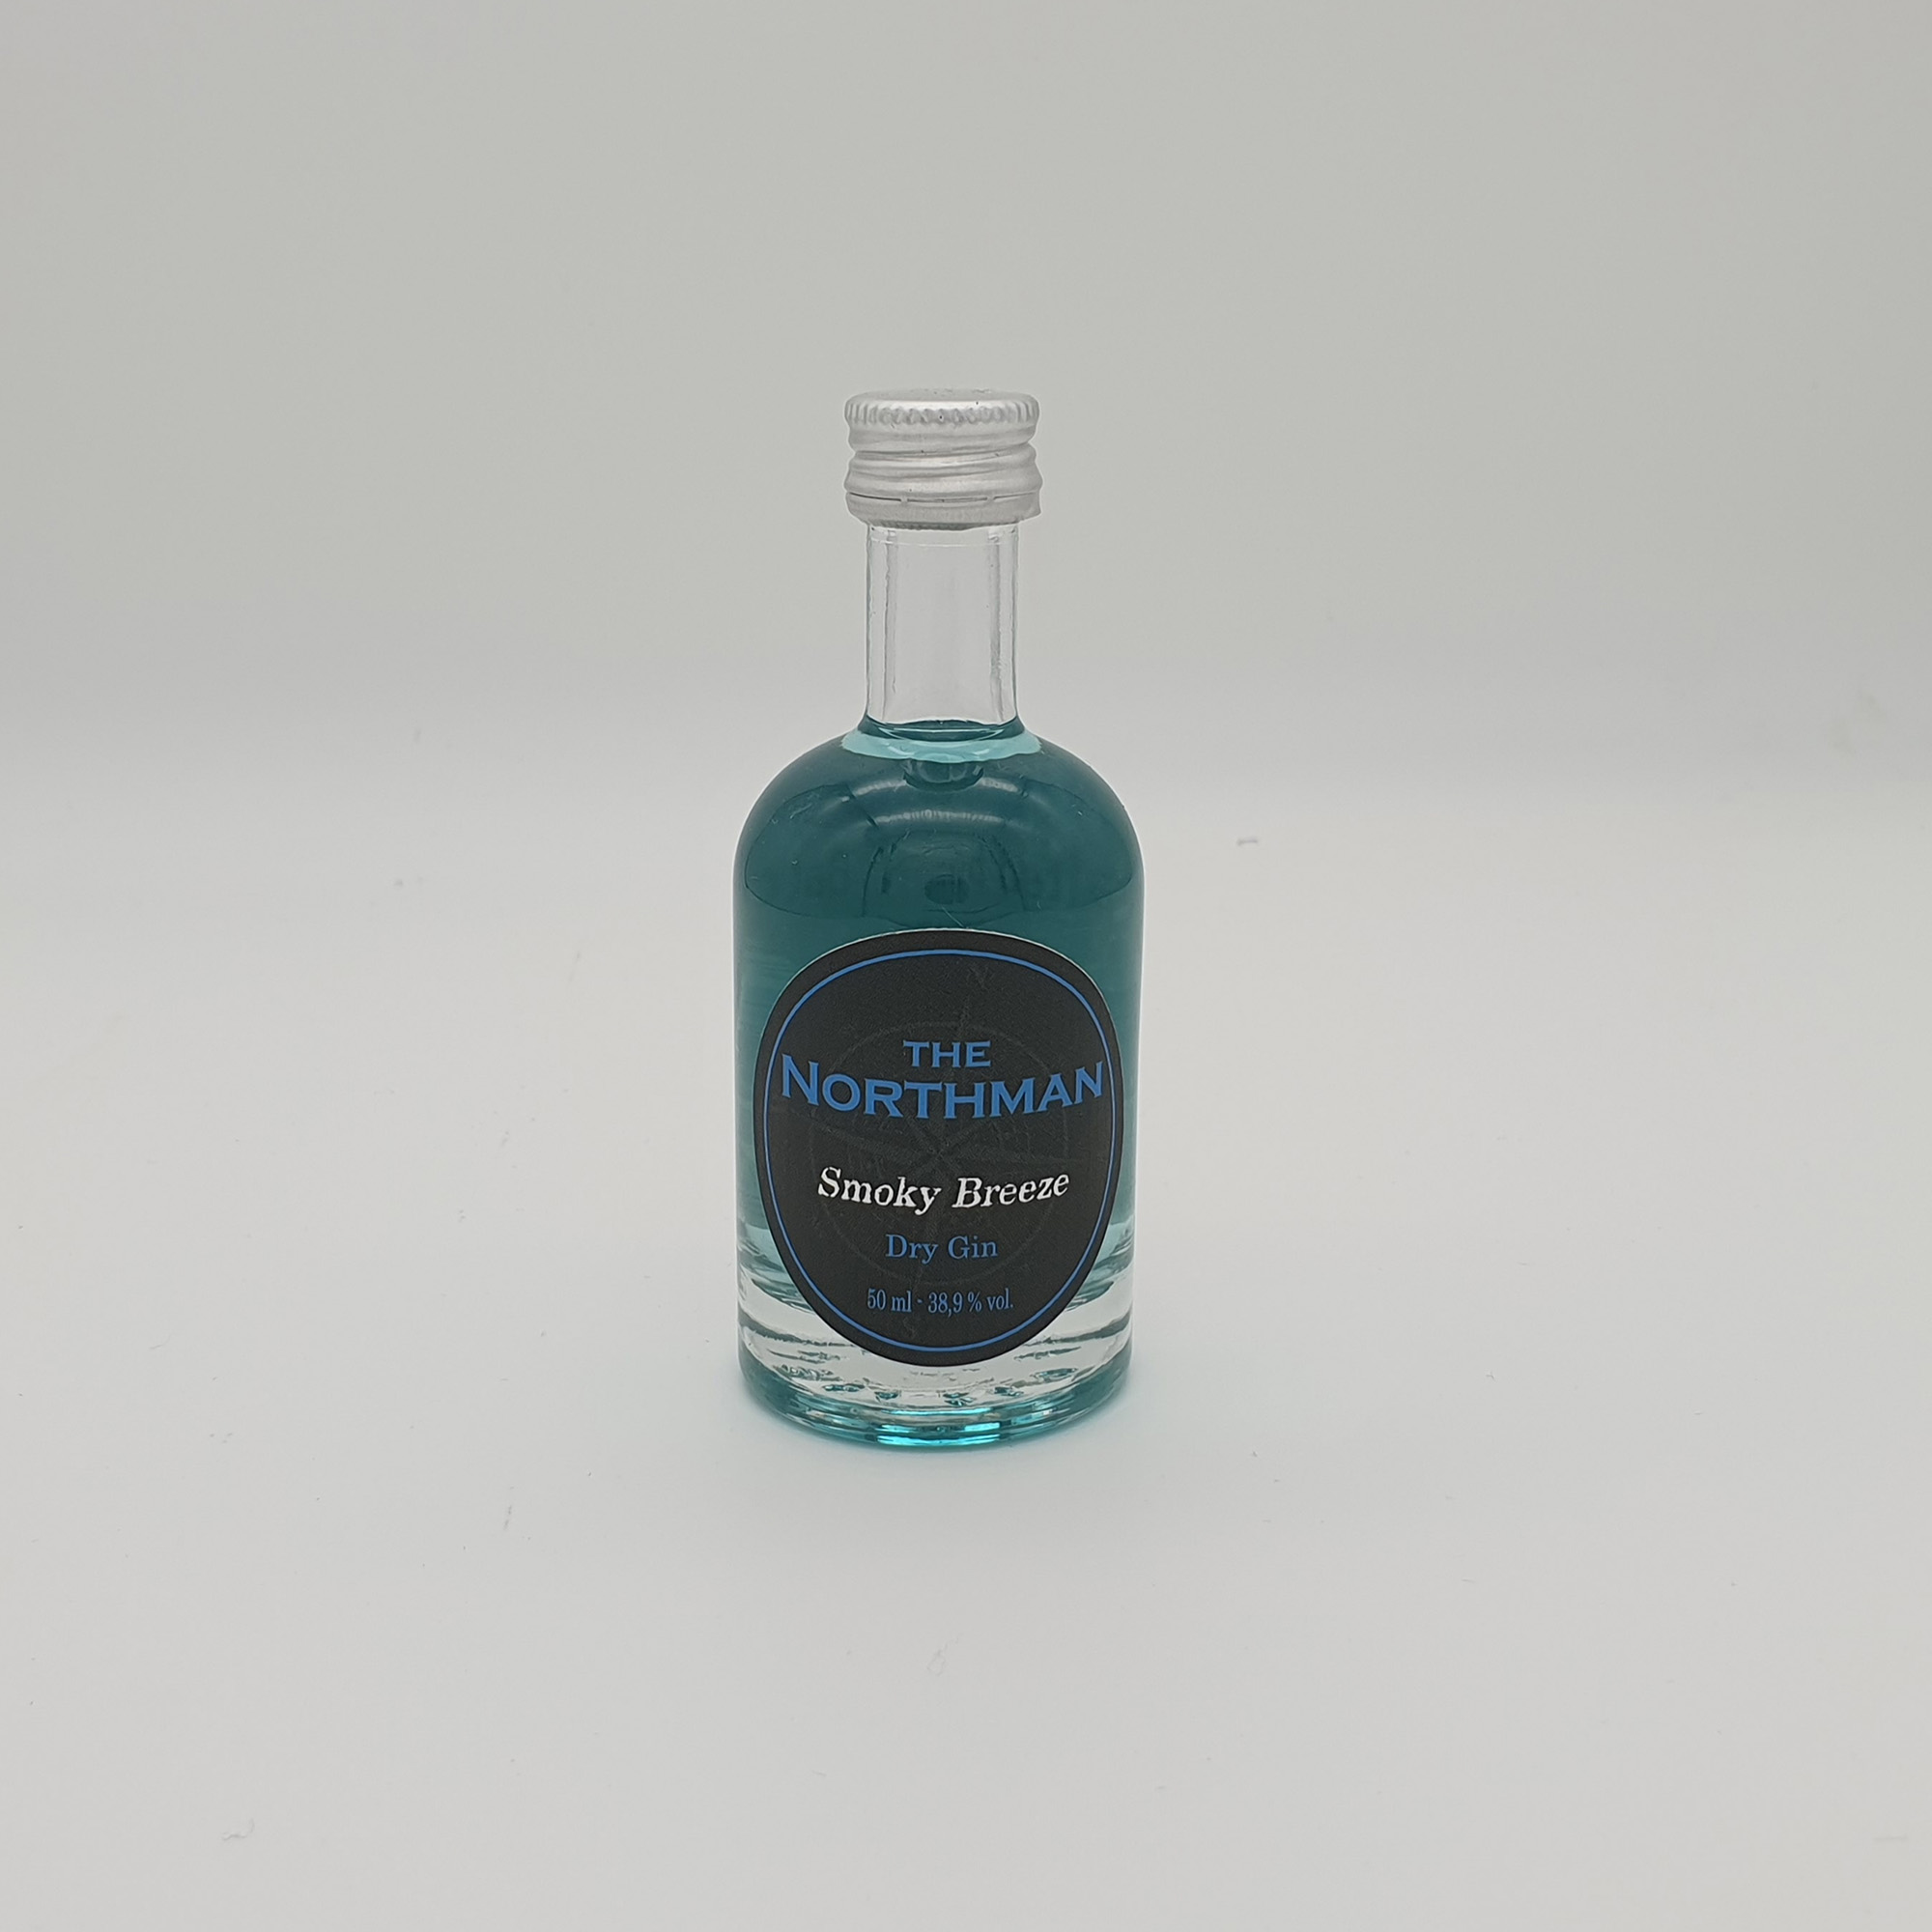 "The Northman ""Smoky Breeze"" Dry Gin (50ml)"